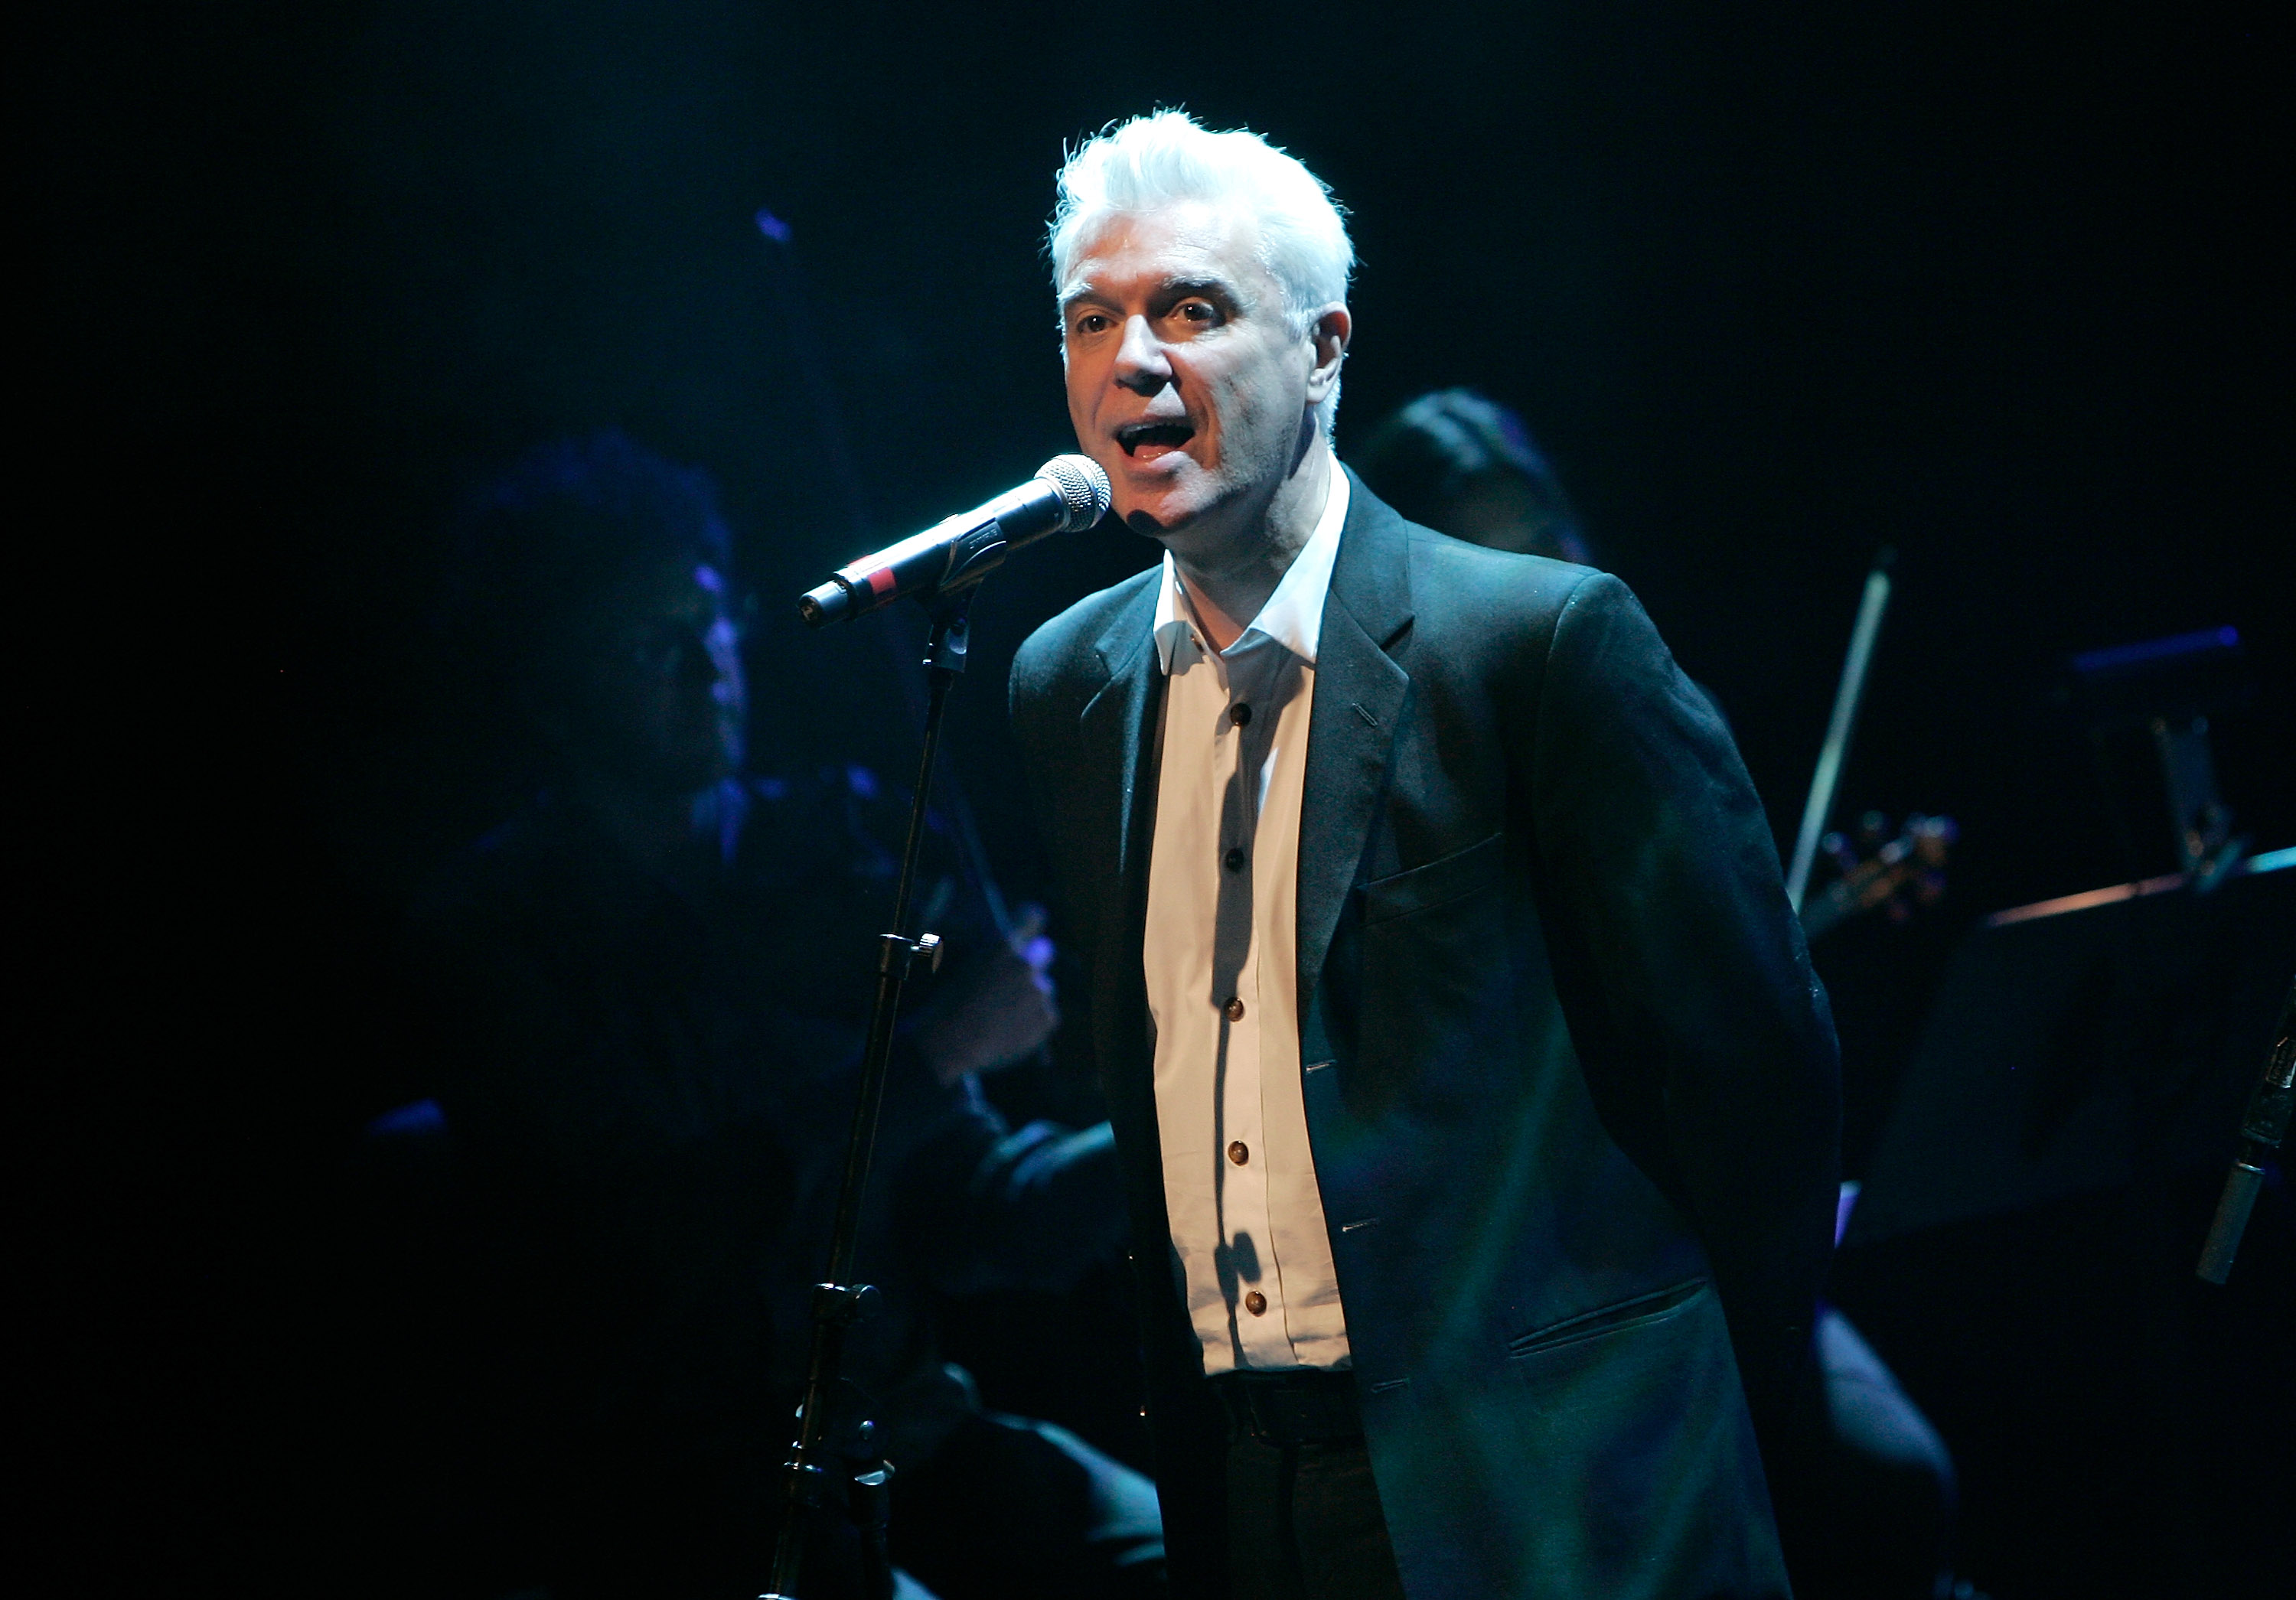 Talking Heads frontman David Byrne will introduce Radiohead at the 2019 Rock and Roll Hall of Fame induction ceremony. The choice is apt as Radiohead borrows its name from a Talking Heads song. (Photo: Getty)